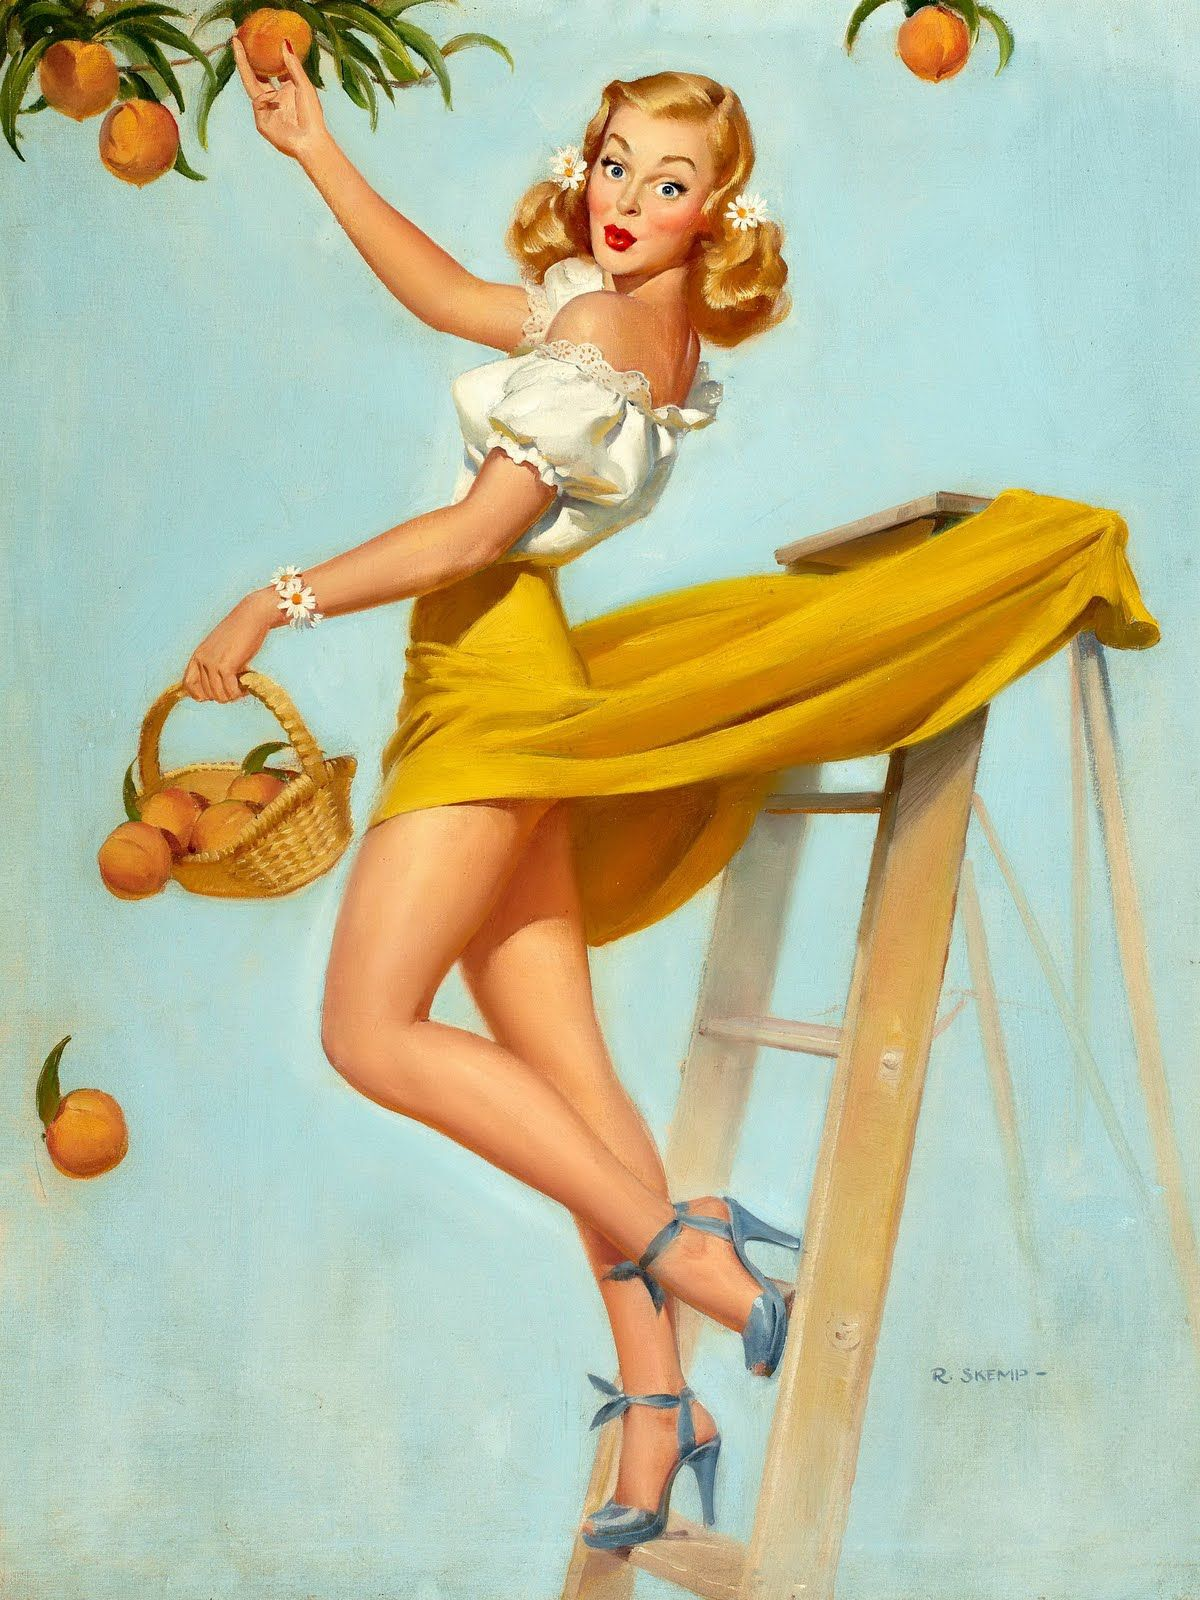 Classic Pin Up Girls By Robert Oliver Skemp Vintage Pin Ups